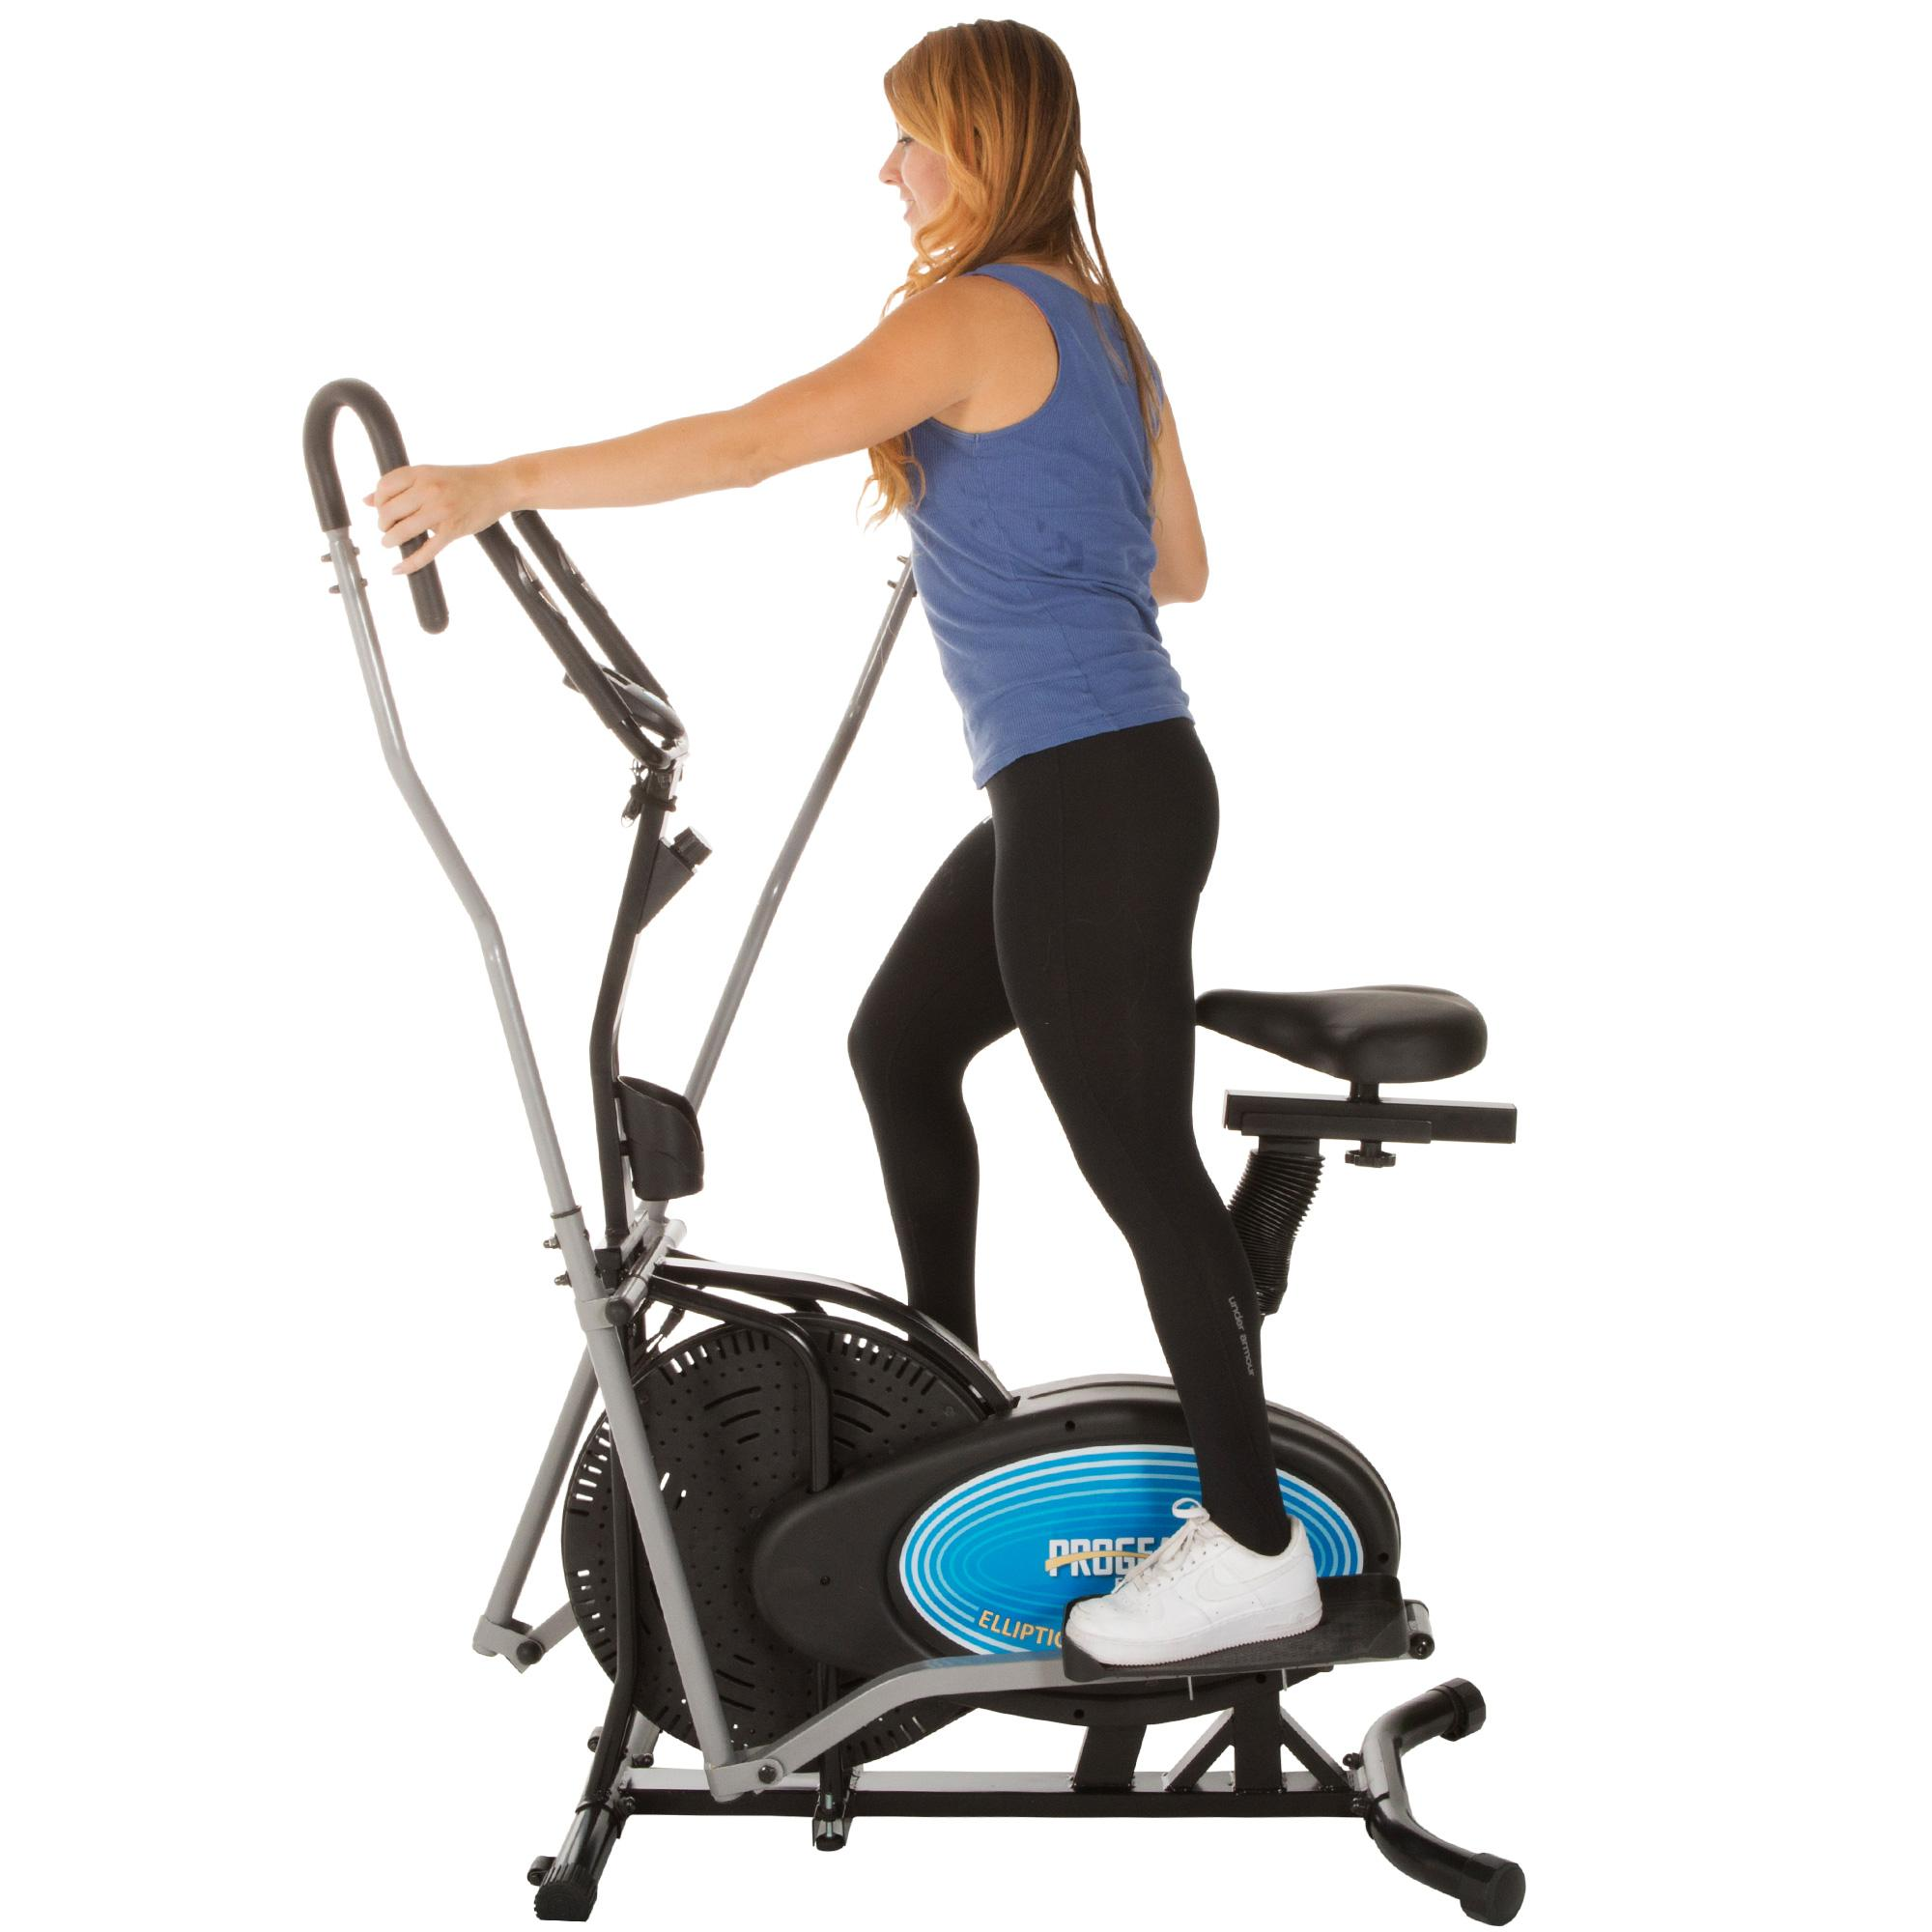 Elliptical Sit Down Bike: Dual Action Workout Arms